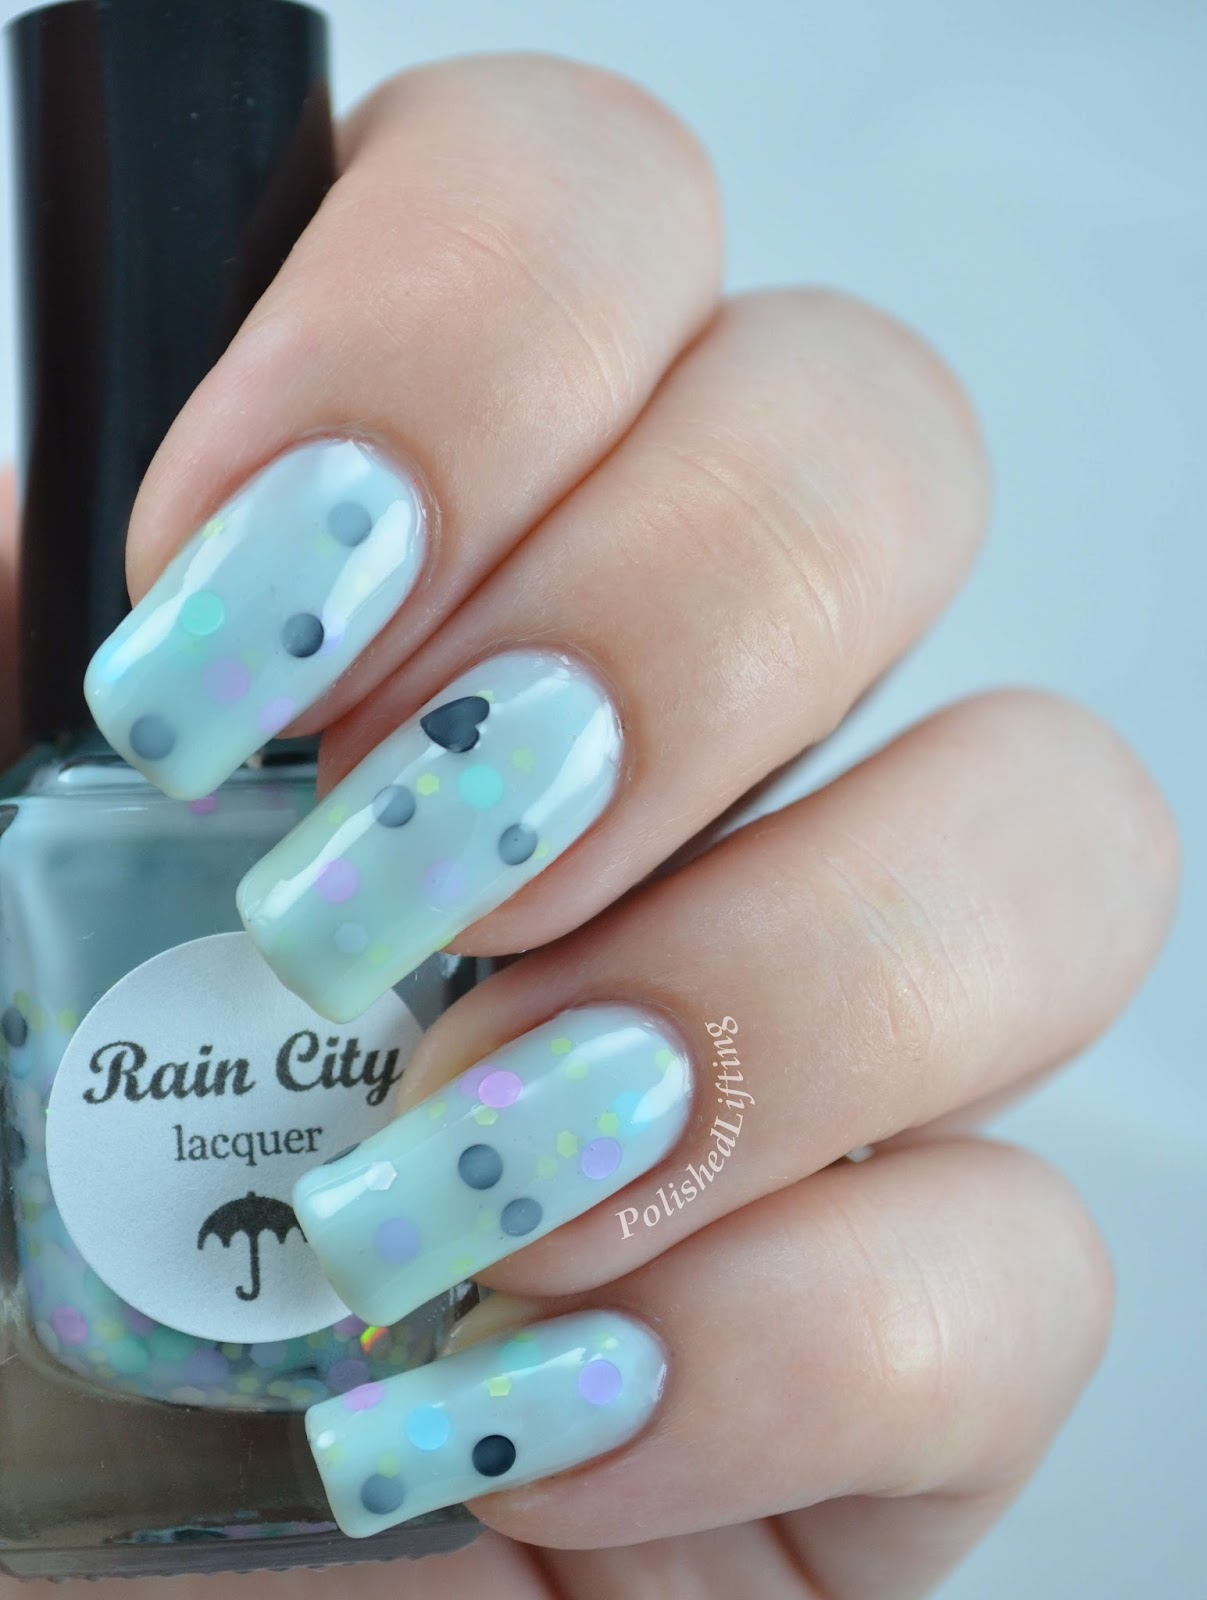 Rain City Lacquer Blueberry Macron